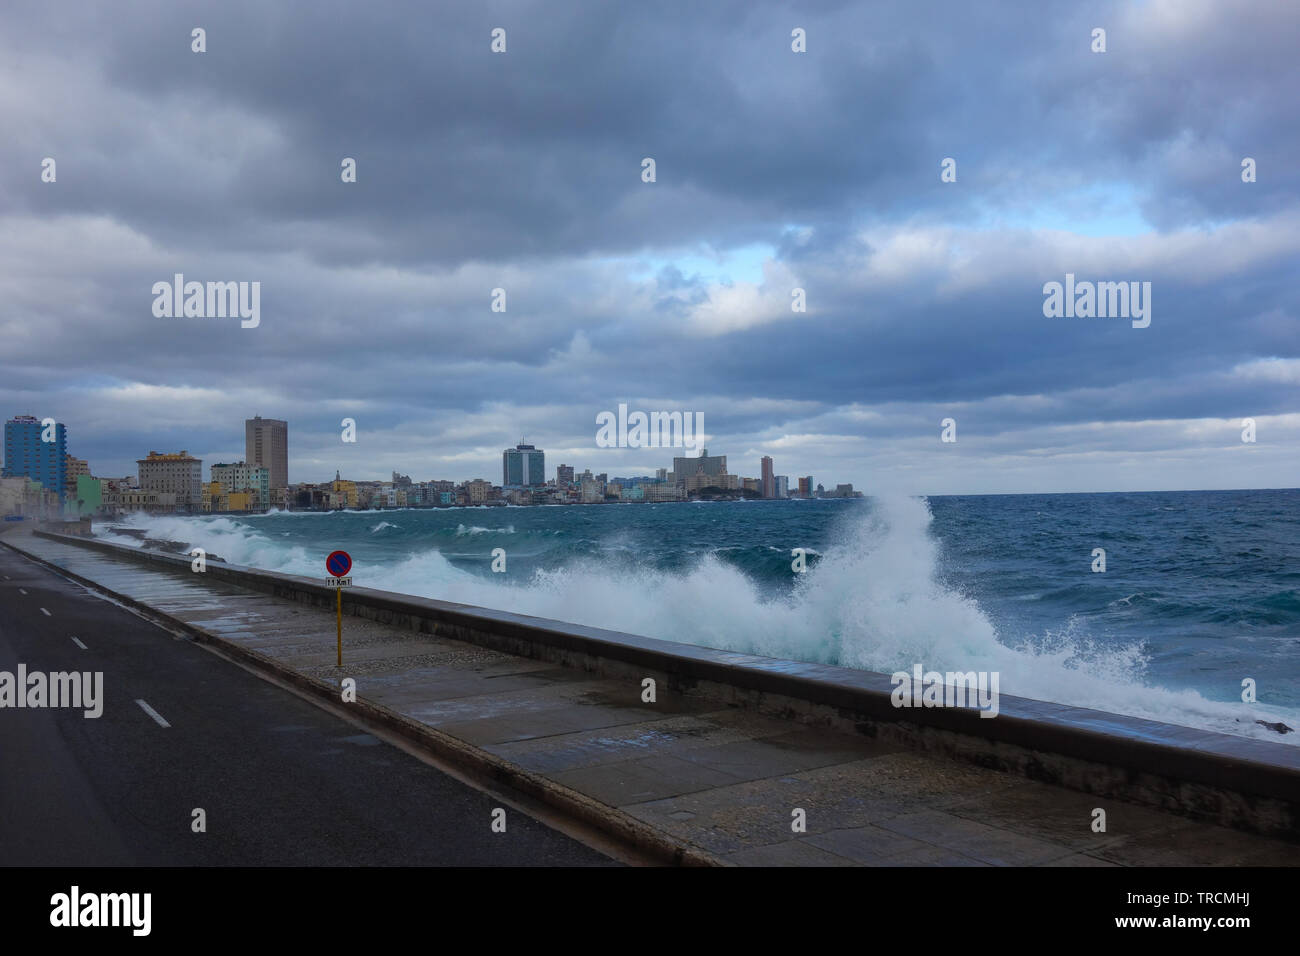 Stormy weather with big waves crashing over the seawall of The Malecon, the famous Havana promenades in Havana, Cuba - Stock Image